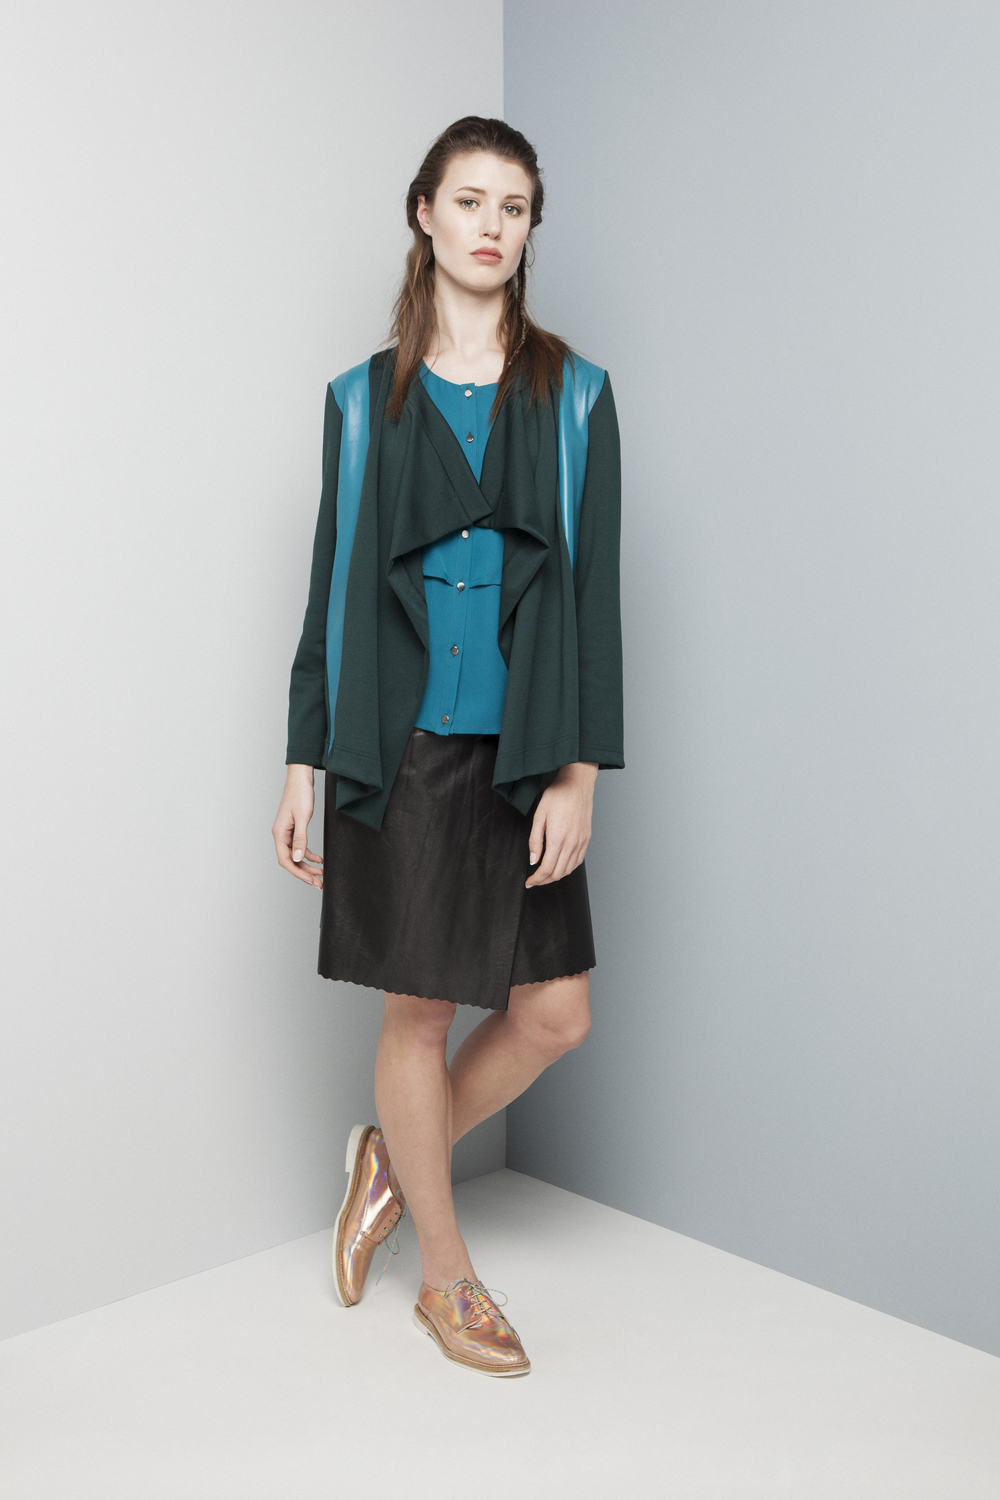 Manley AW14 Rylie Skirt (teal) €260 and Rylie Nappa Cardi (teal) €247 and Rylie Skirt (black) €286.jpg